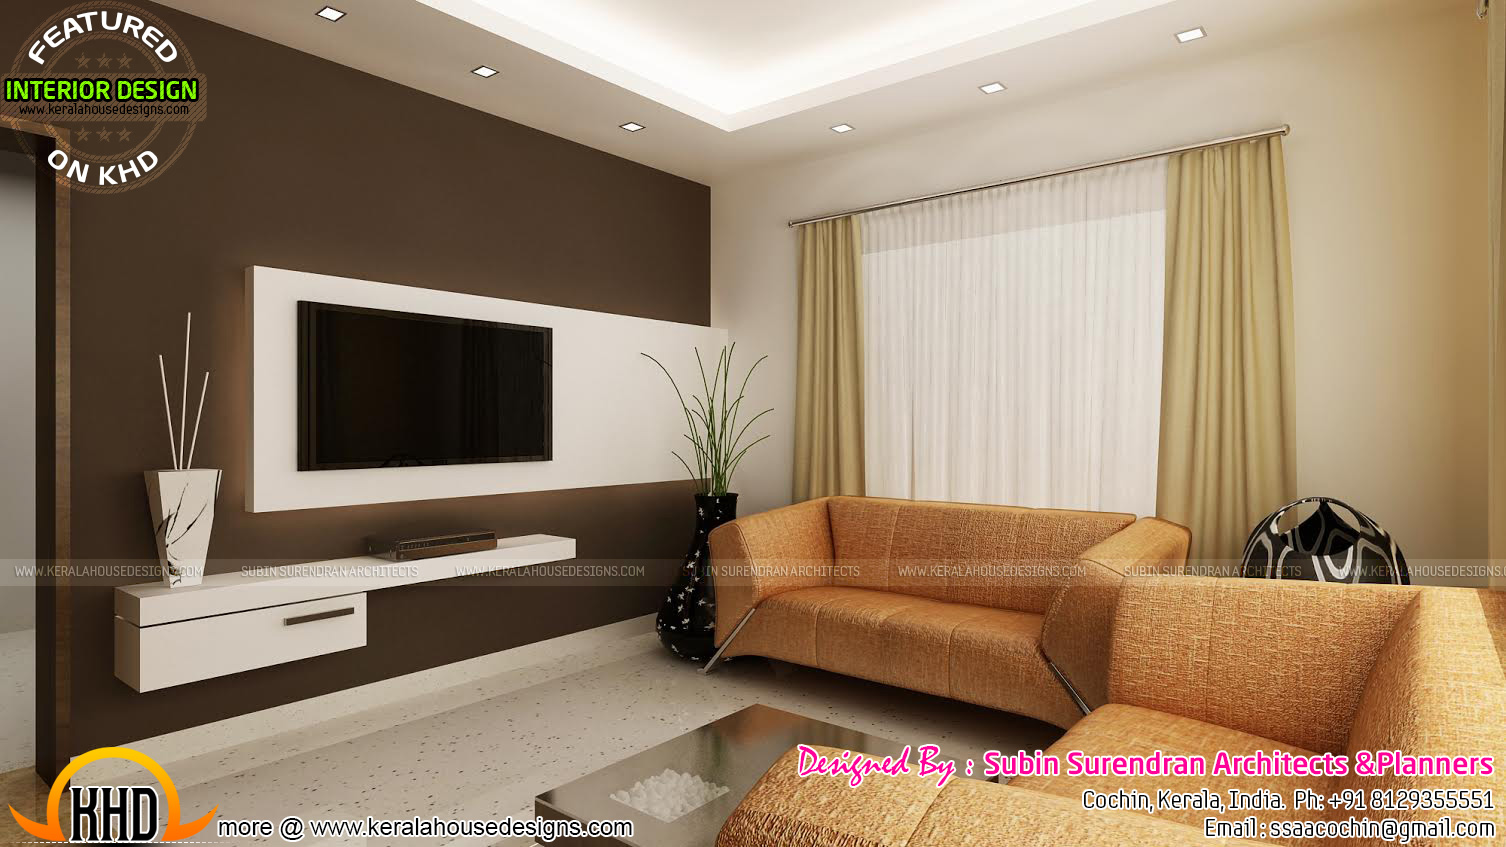 Living rooms modern kitchen interiors in kerala kerala for Interior design for living room images